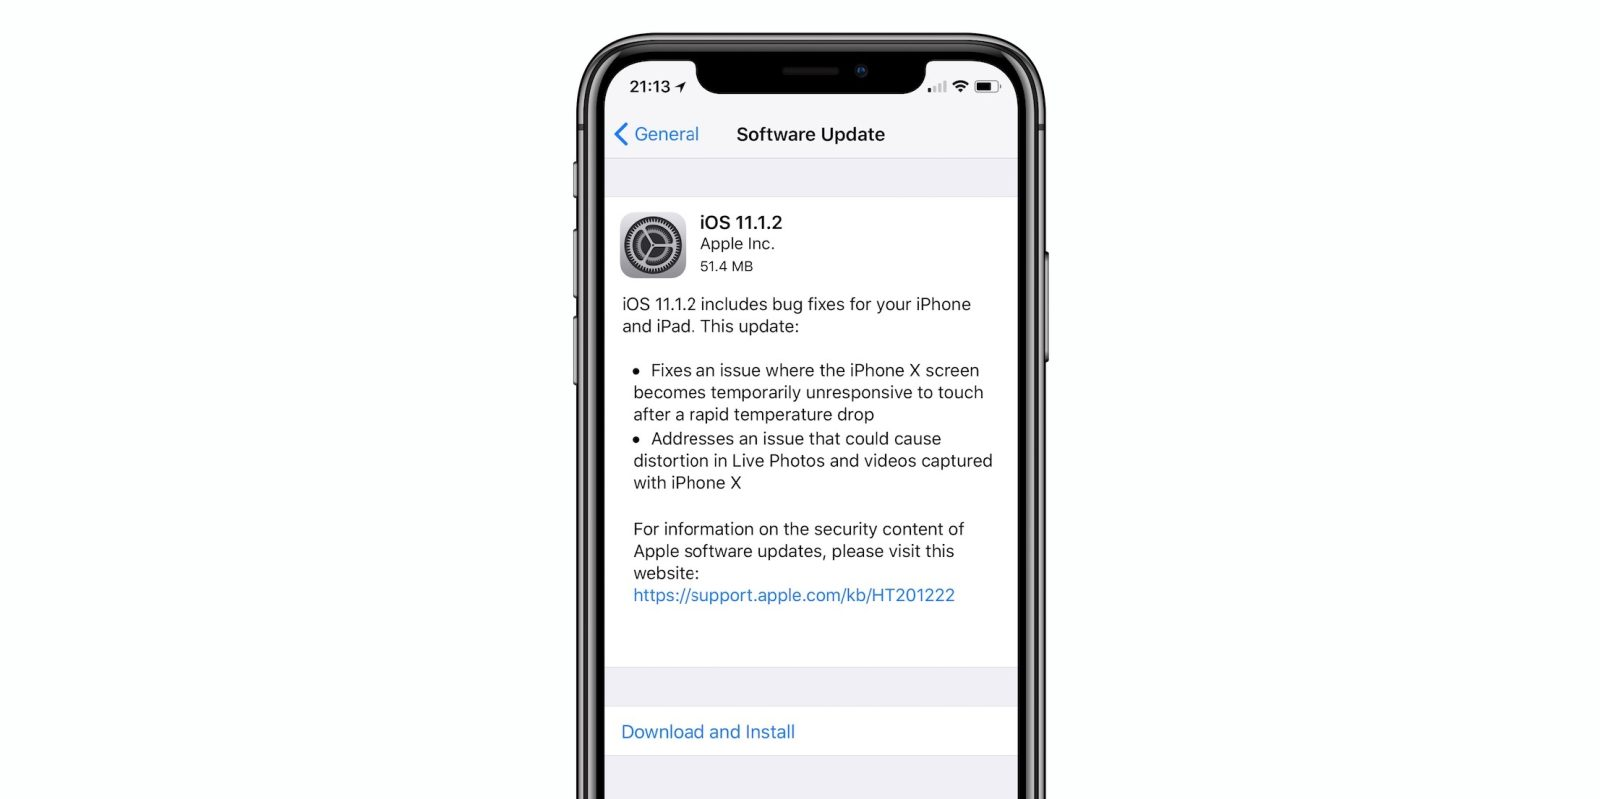 Apple releases iOS 11.1.2 with fix for unresponsive iPhone